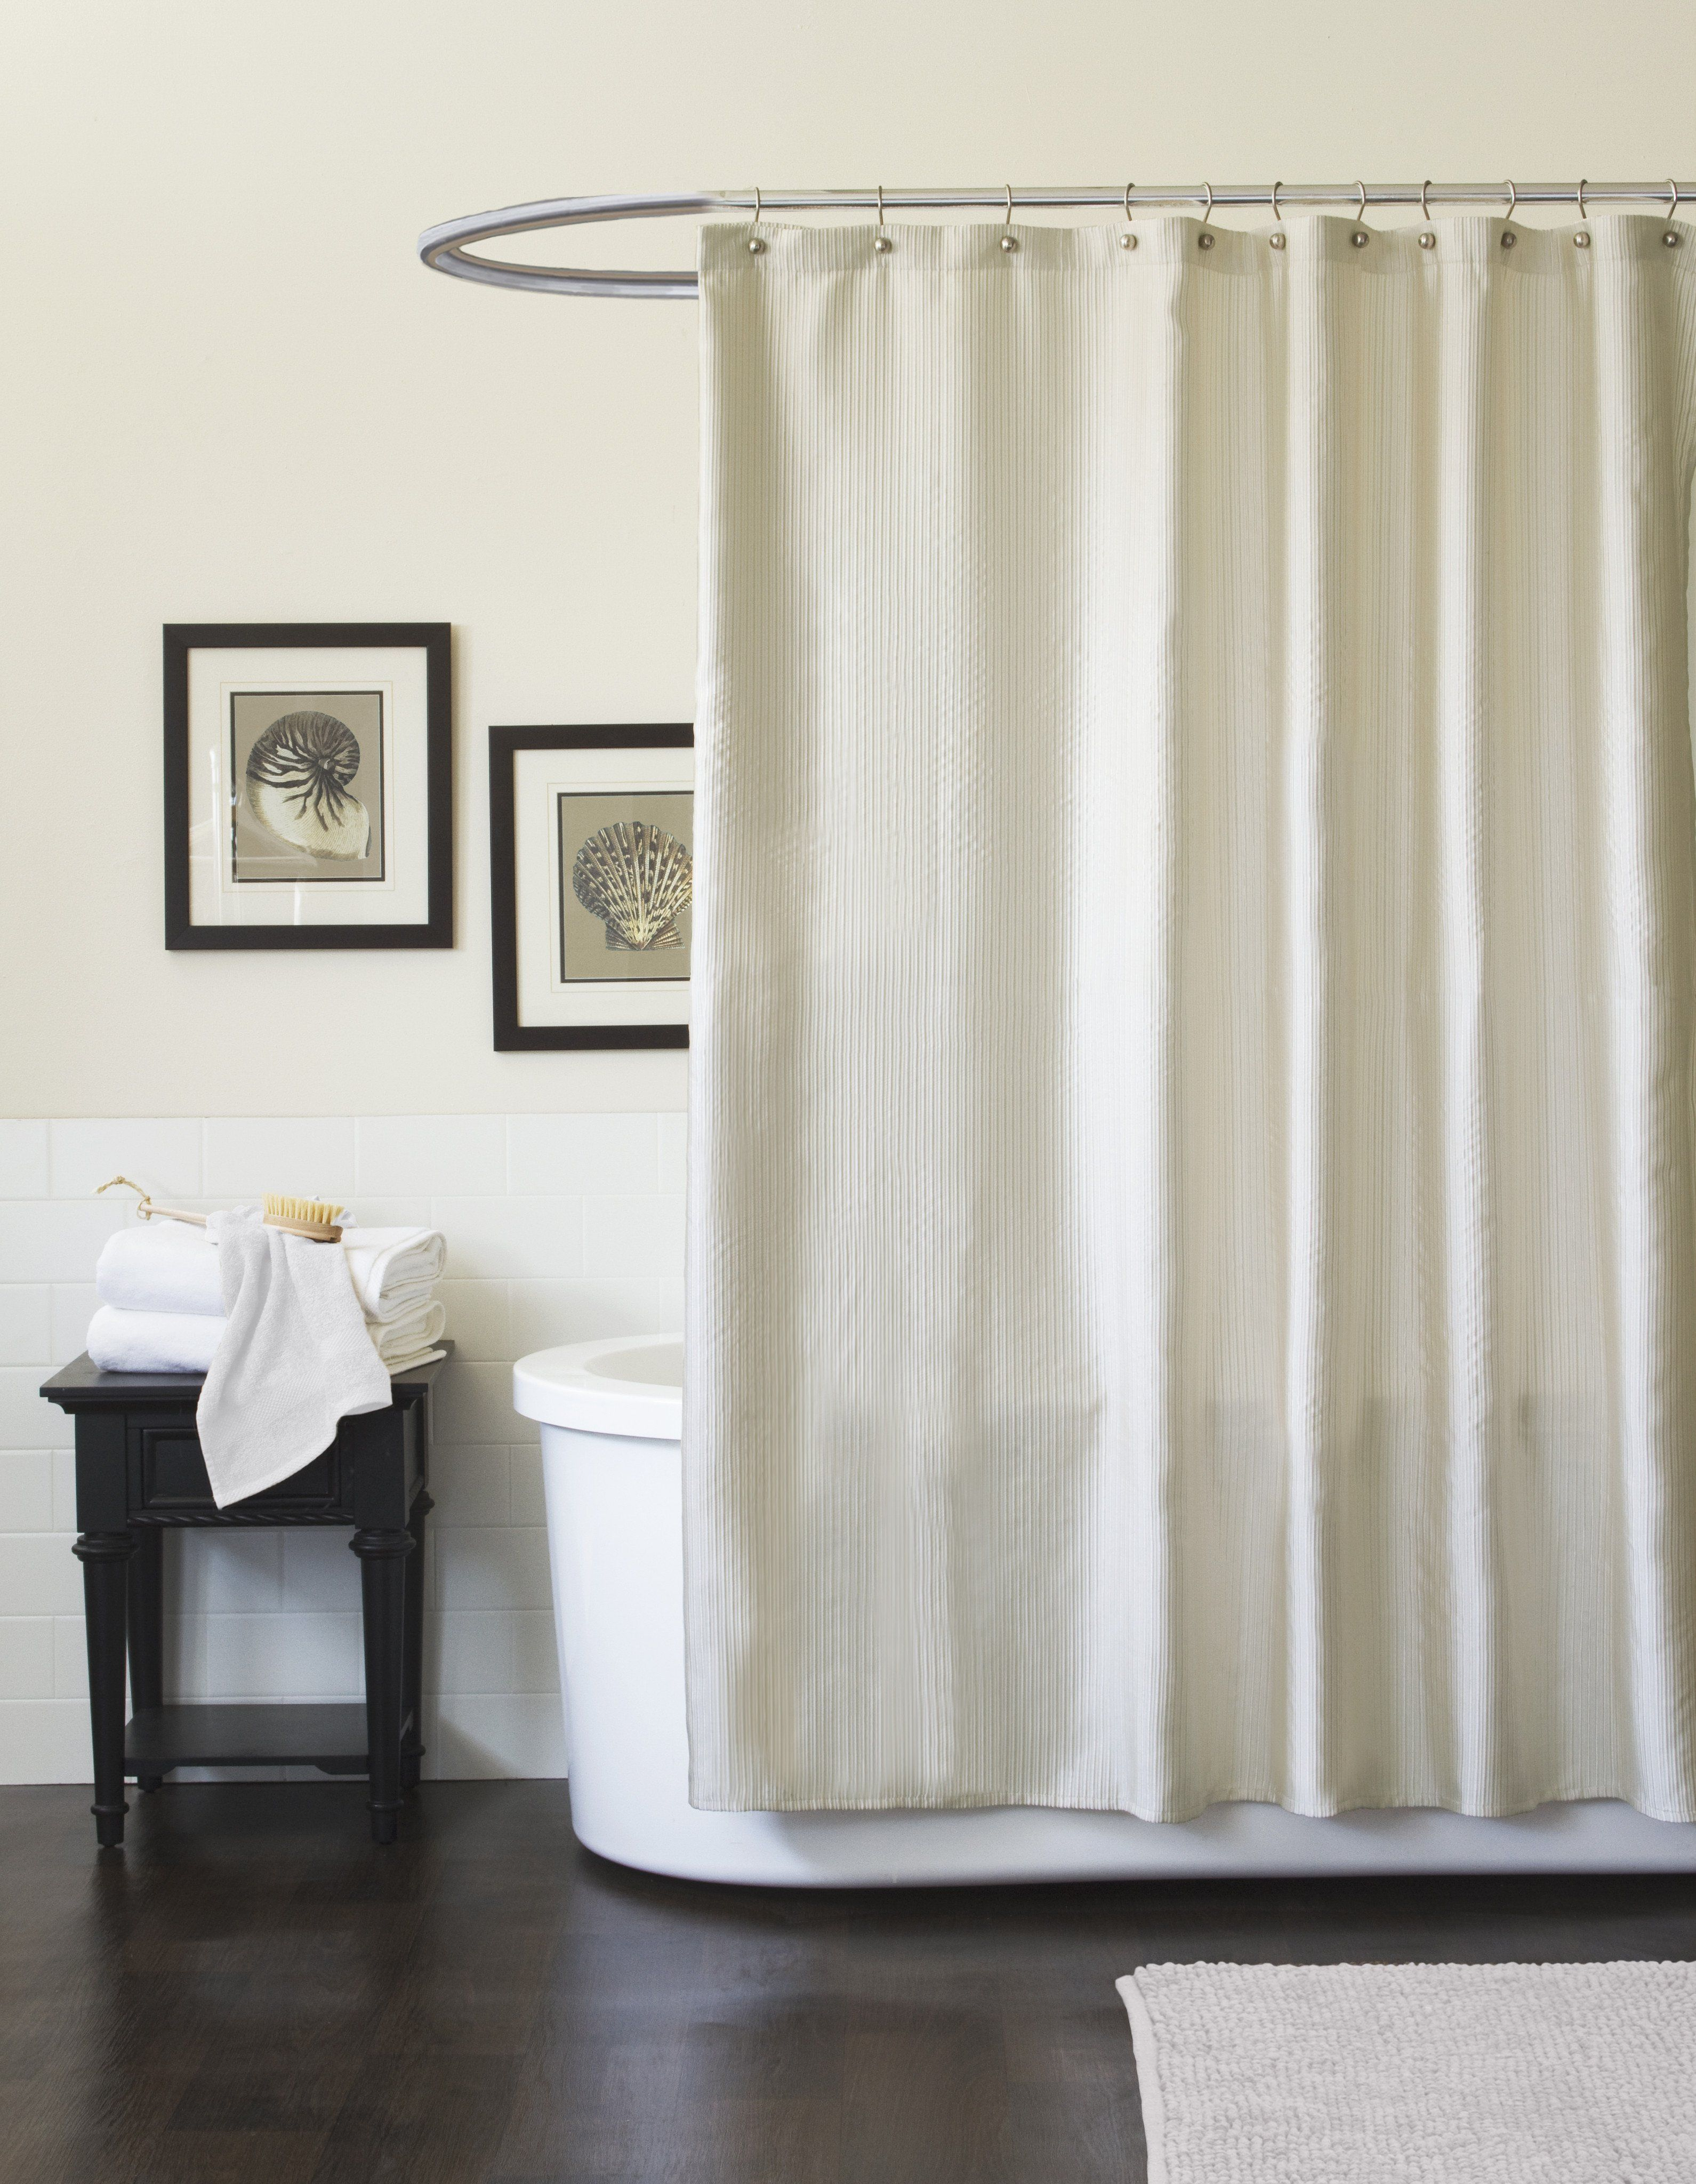 Channel shower curtain products